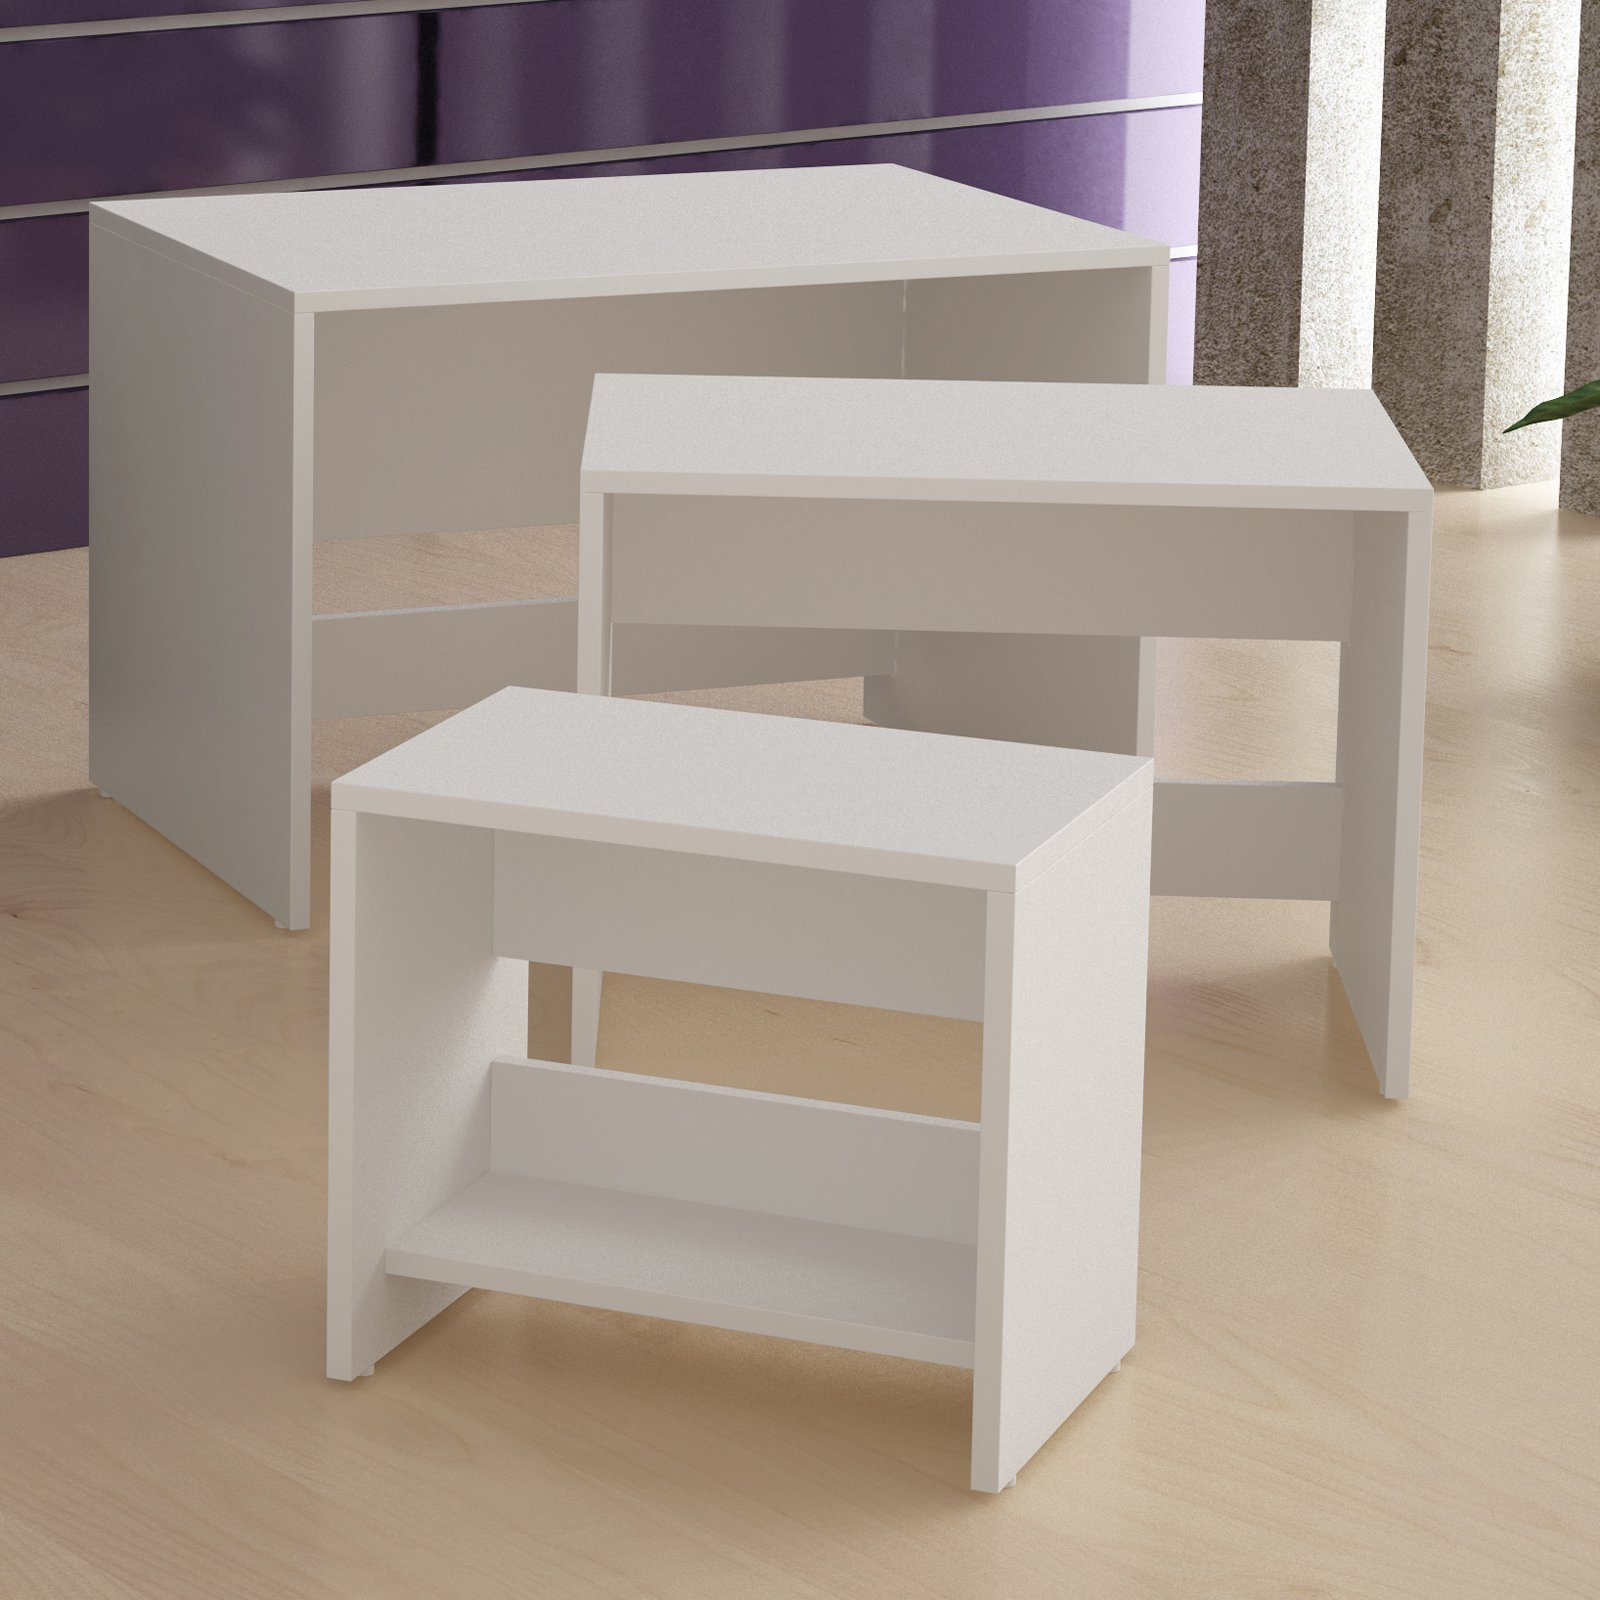 Image of Accenuations by Manhattan Comfort Saffle Side Nesting Occasional Tables 2.0 - White